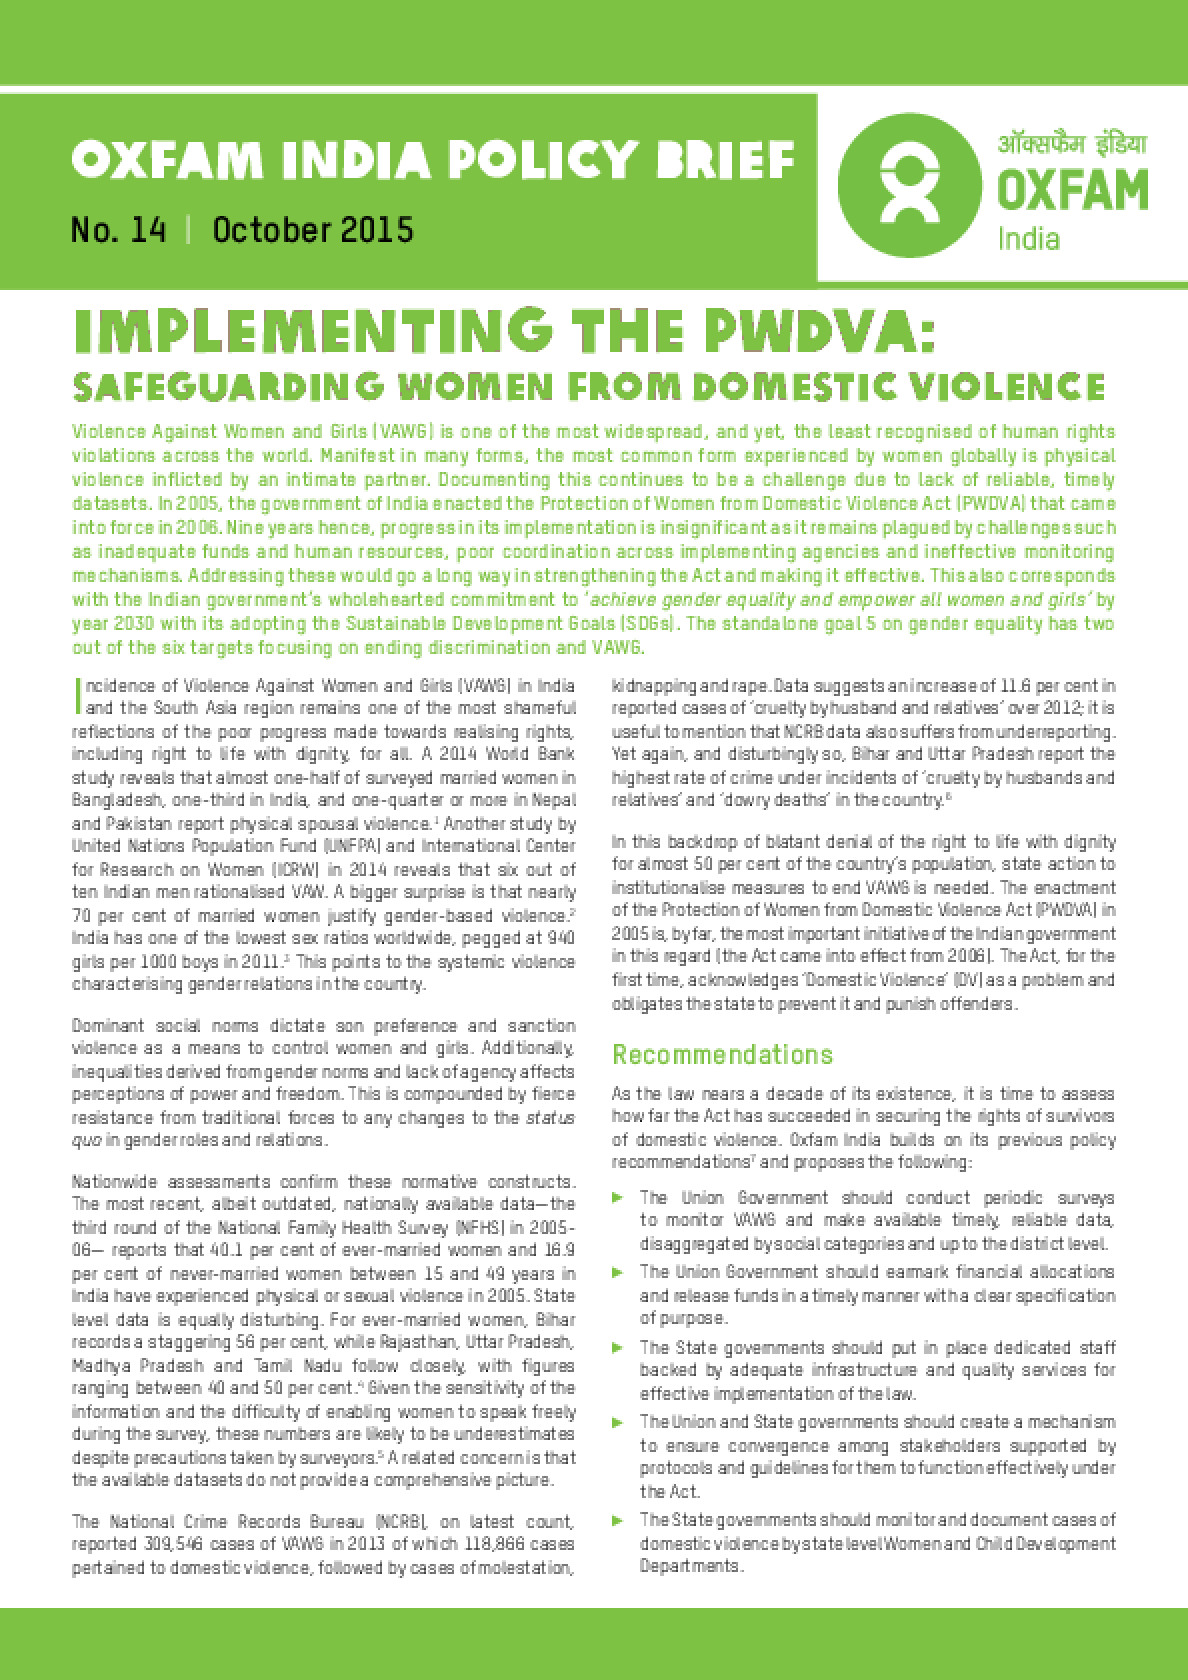 Implementing the PWDVA: Safeguarding women from domestic